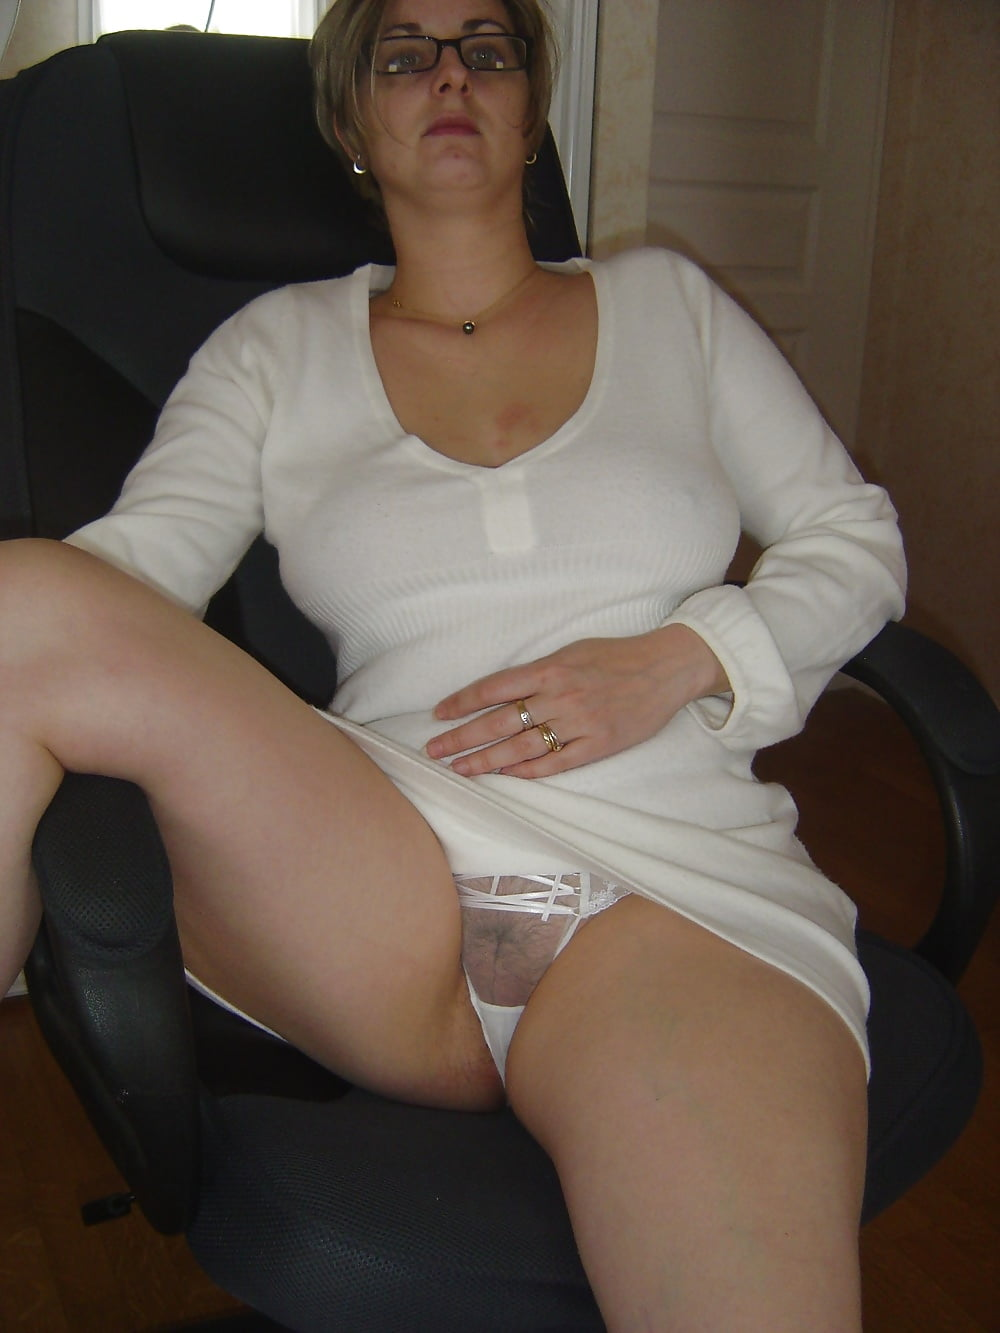 Chubby Mature French Milf Celine 4 - 50 Pics  Xhamster-5226